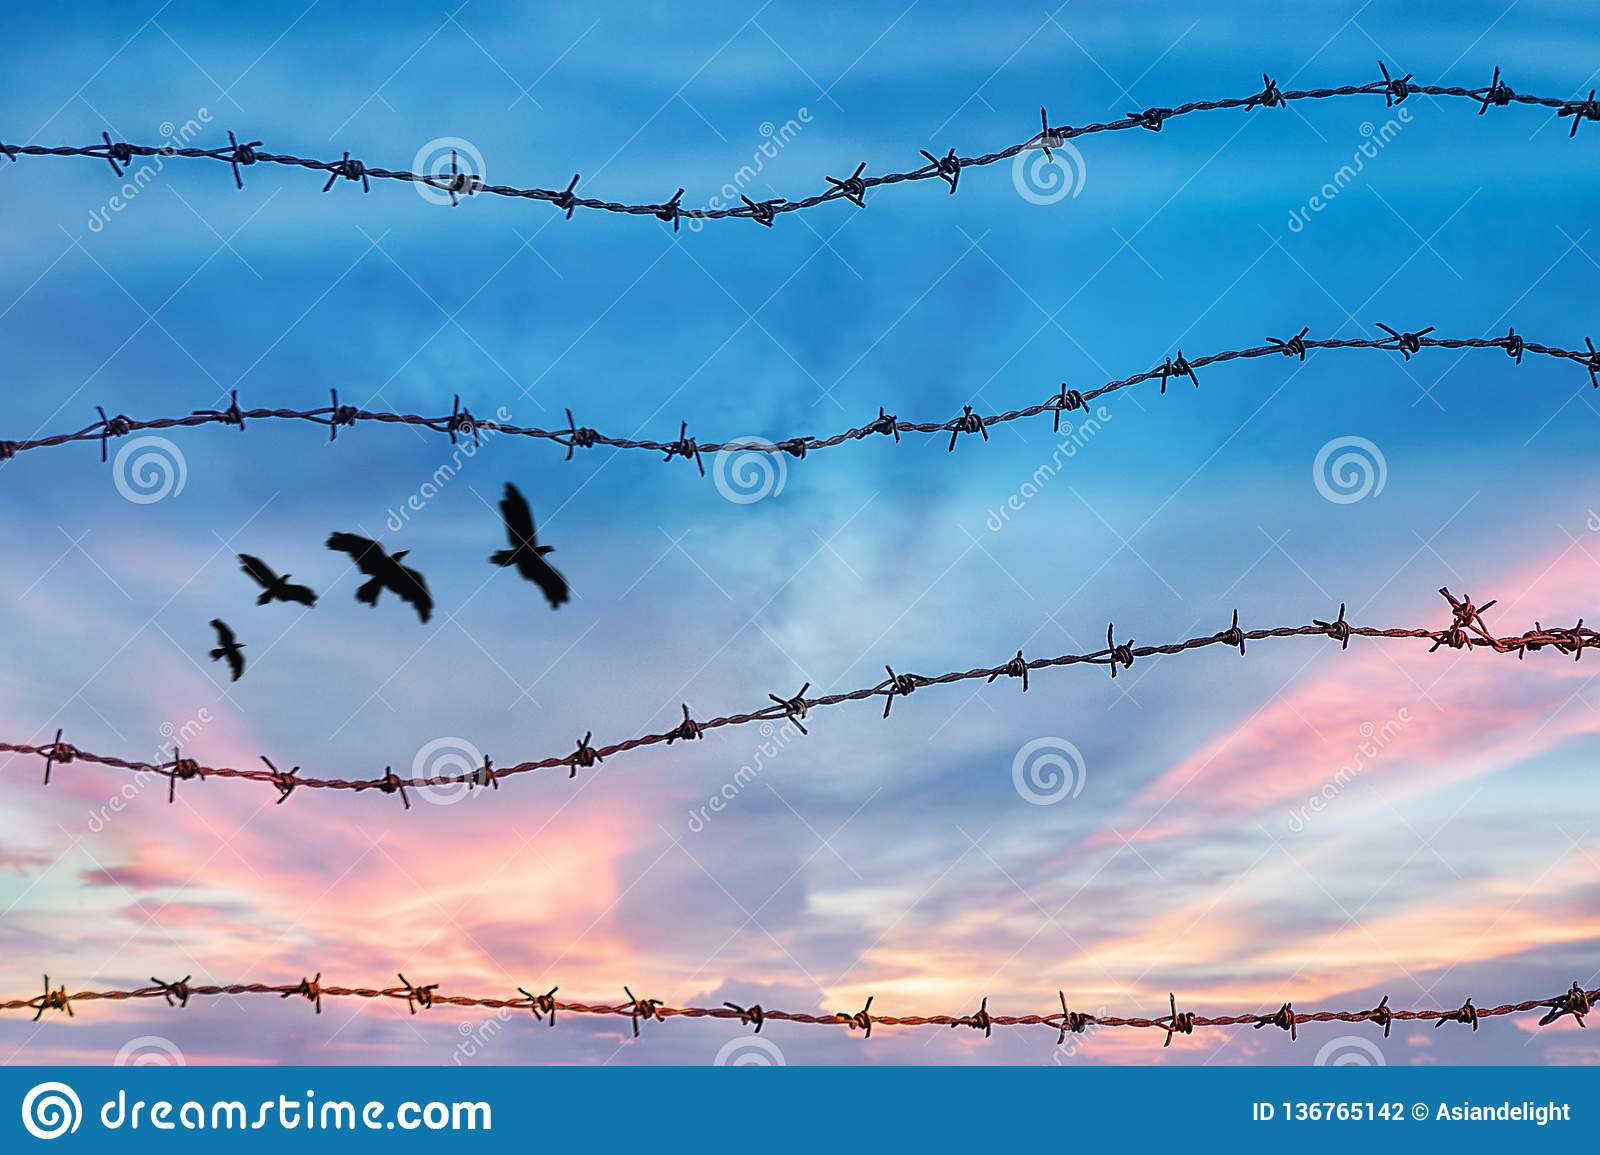 Freedom and human rights concept. silhouette of free bird flying in the sky behind barbed wire with sunset background